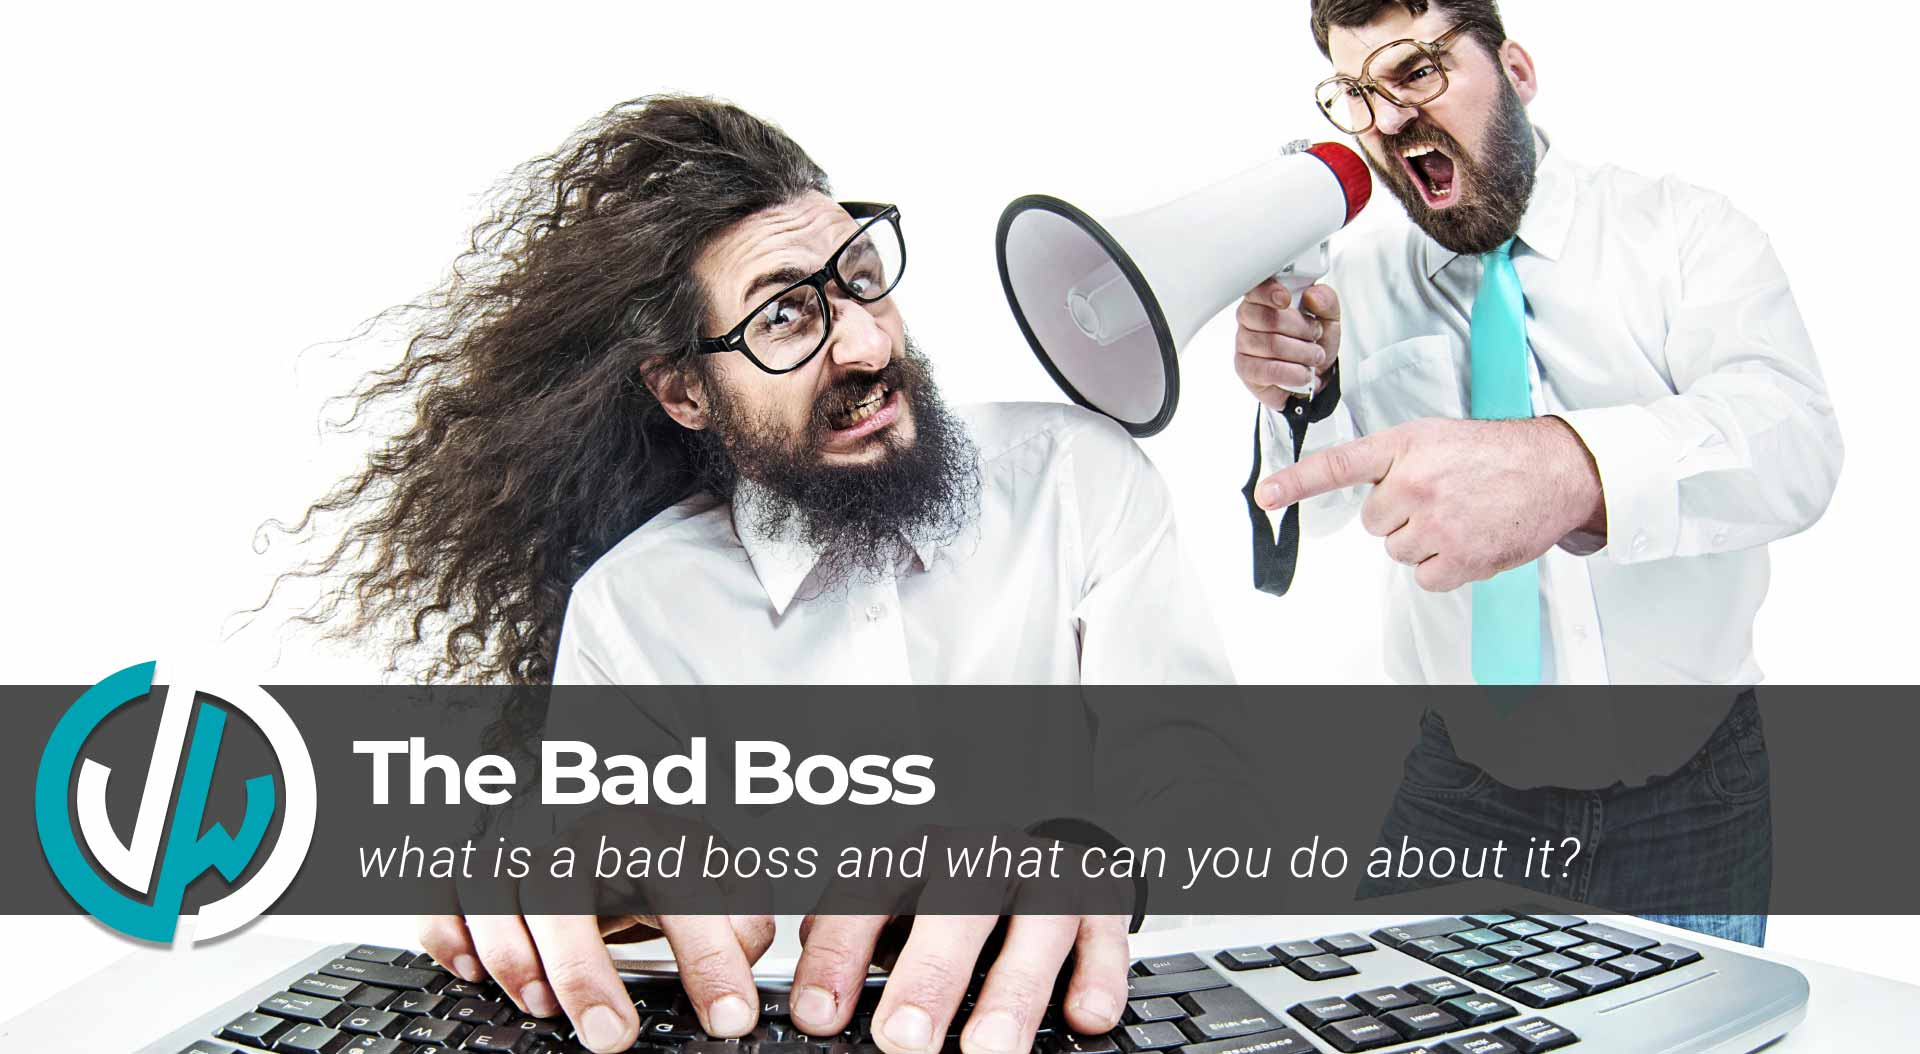 The bad boss - what is a bad boss and what can you do about it?